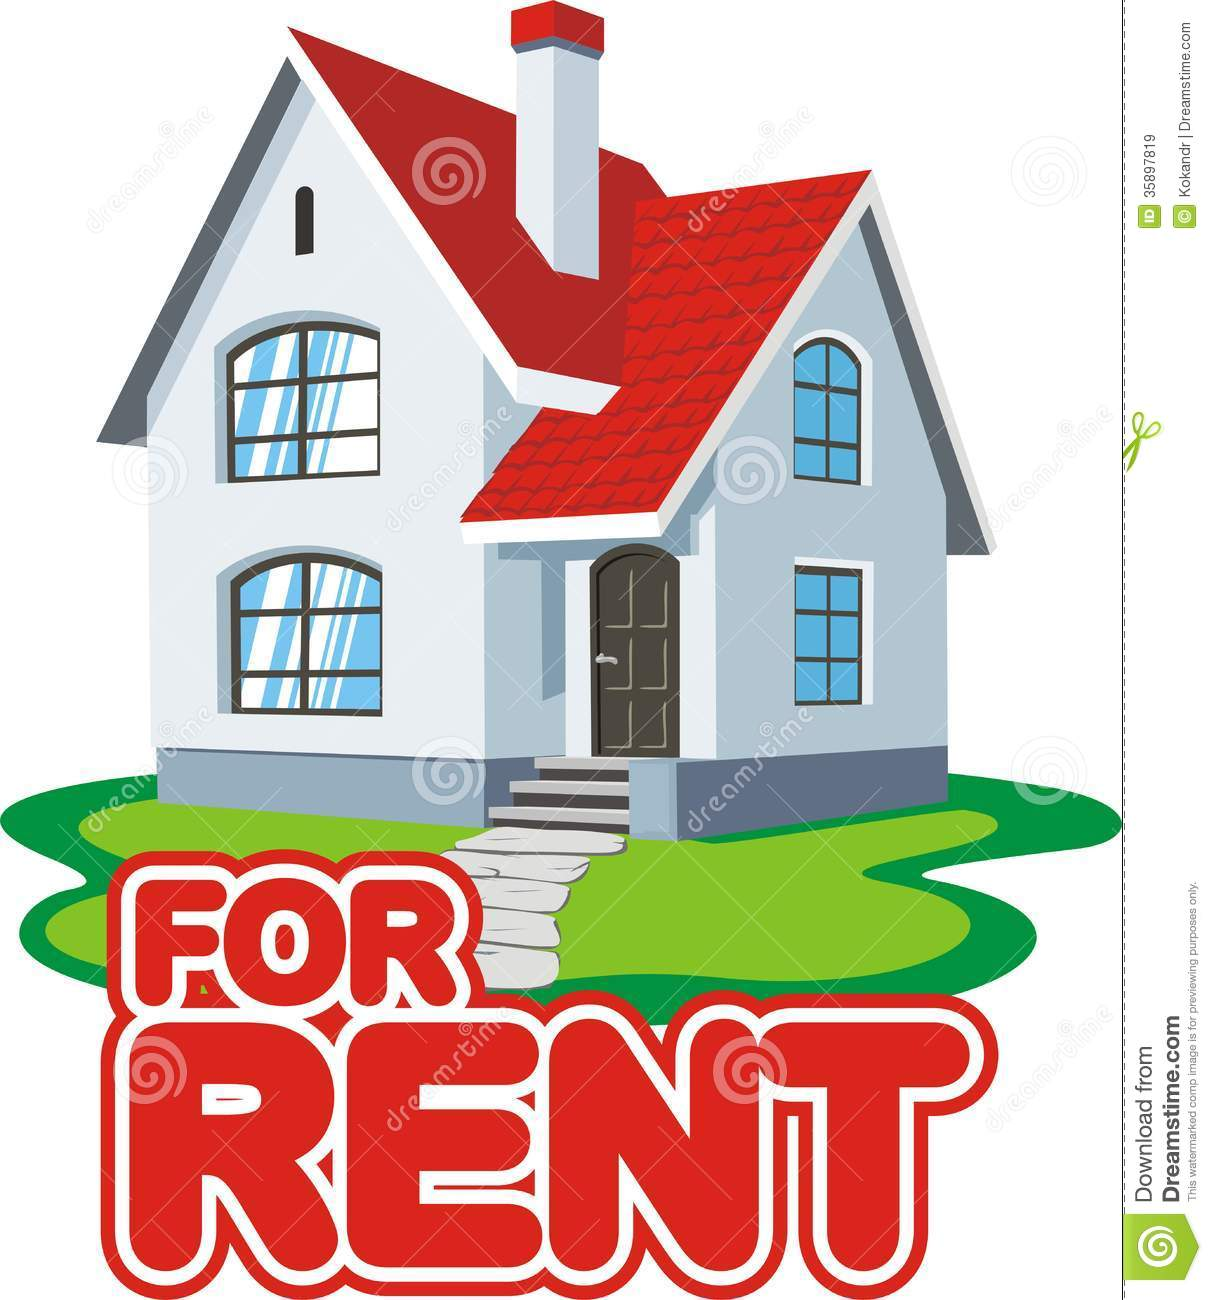 Apartmet For Rent: House For Rent Stock Vector. Illustration Of Realtor